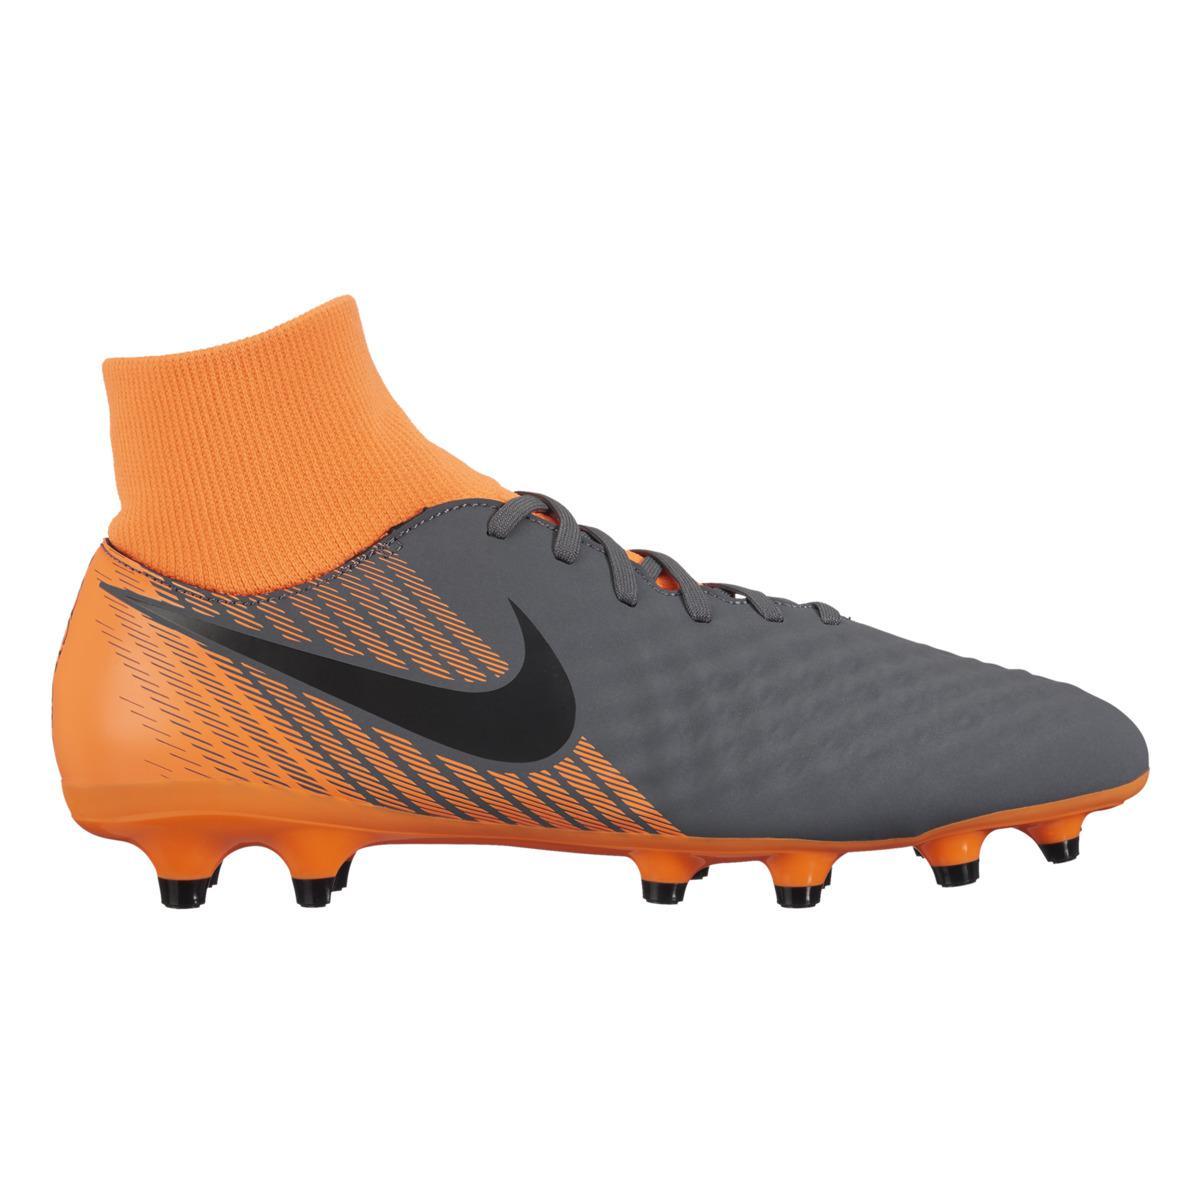 purchase cheap 988f7 78bf4 Lyst - Nike Magista Obra 2 Academy Dynamic Fit (fg) Football Boots ...